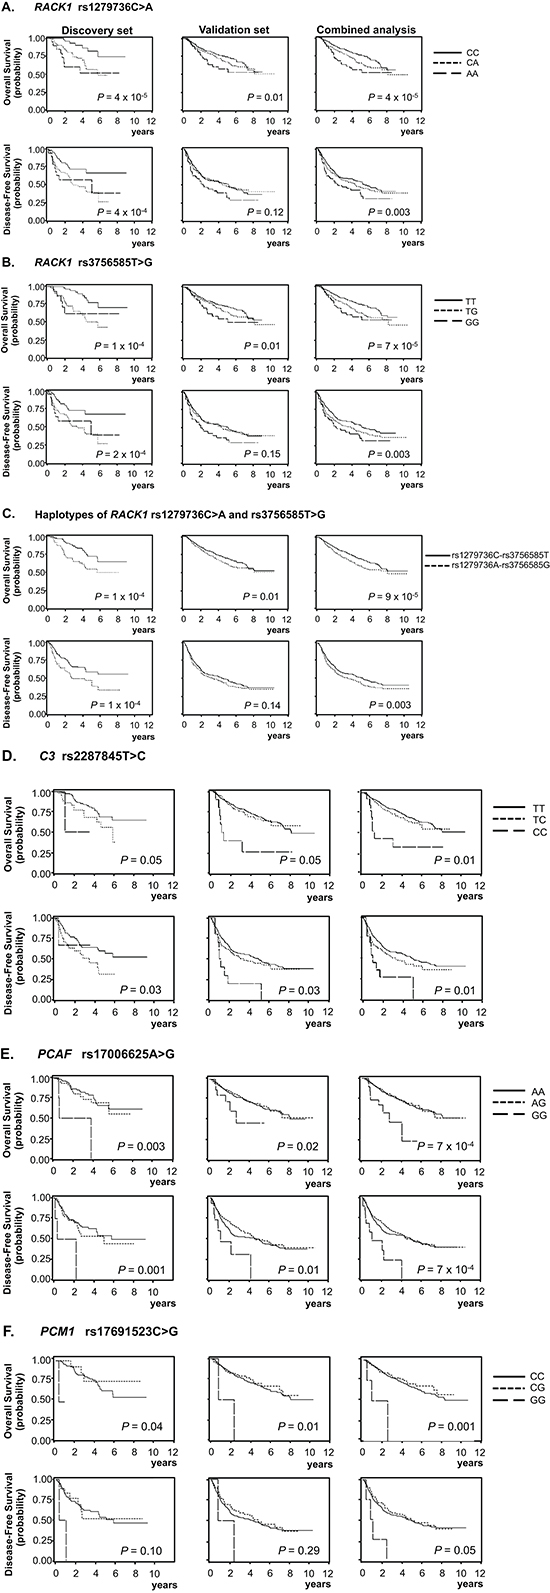 Kaplan-Meier plots of overall survival and disease-free survival according to genotypes and haplotypes.